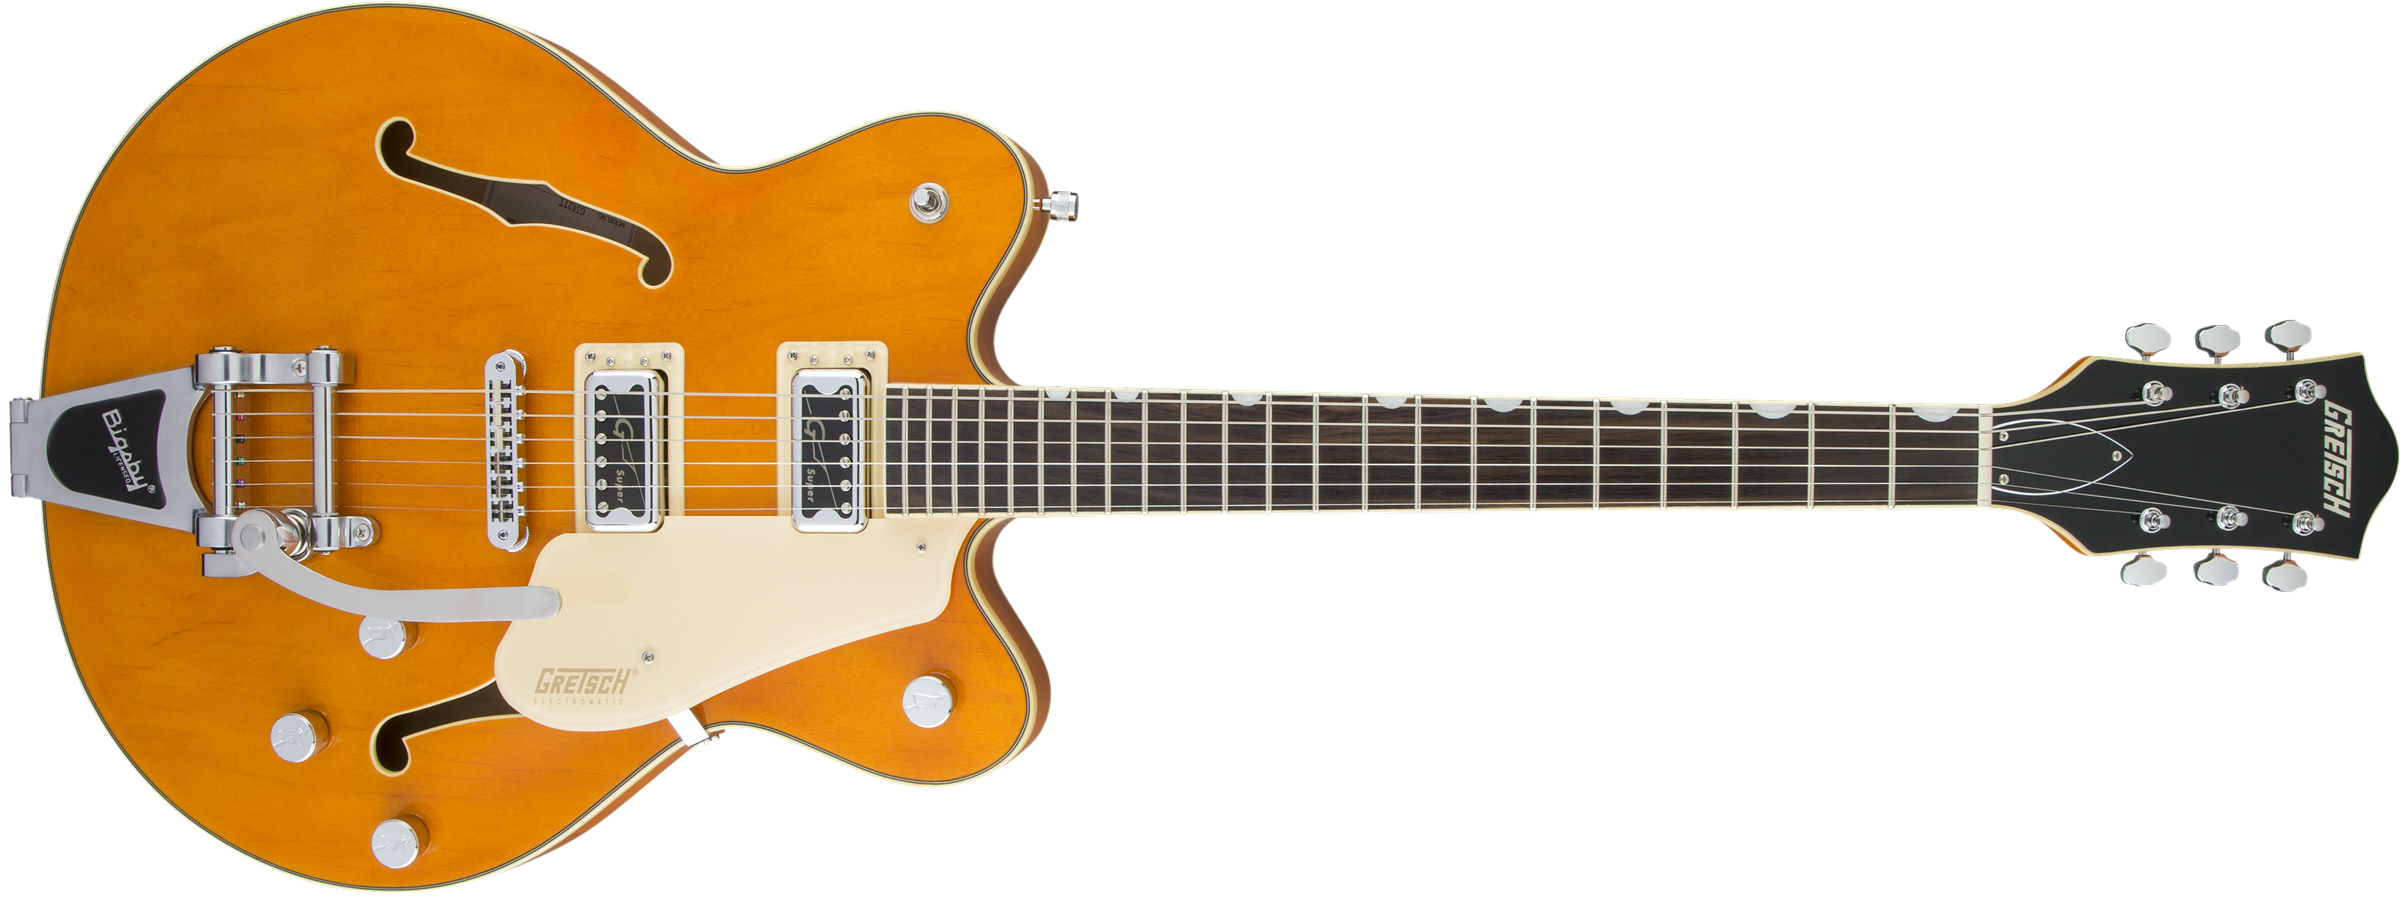 GRETSCH G5622T Electromatic Center Block Double-Cut with Bigsby, Rosewood Fingerboard, Vintage Orange